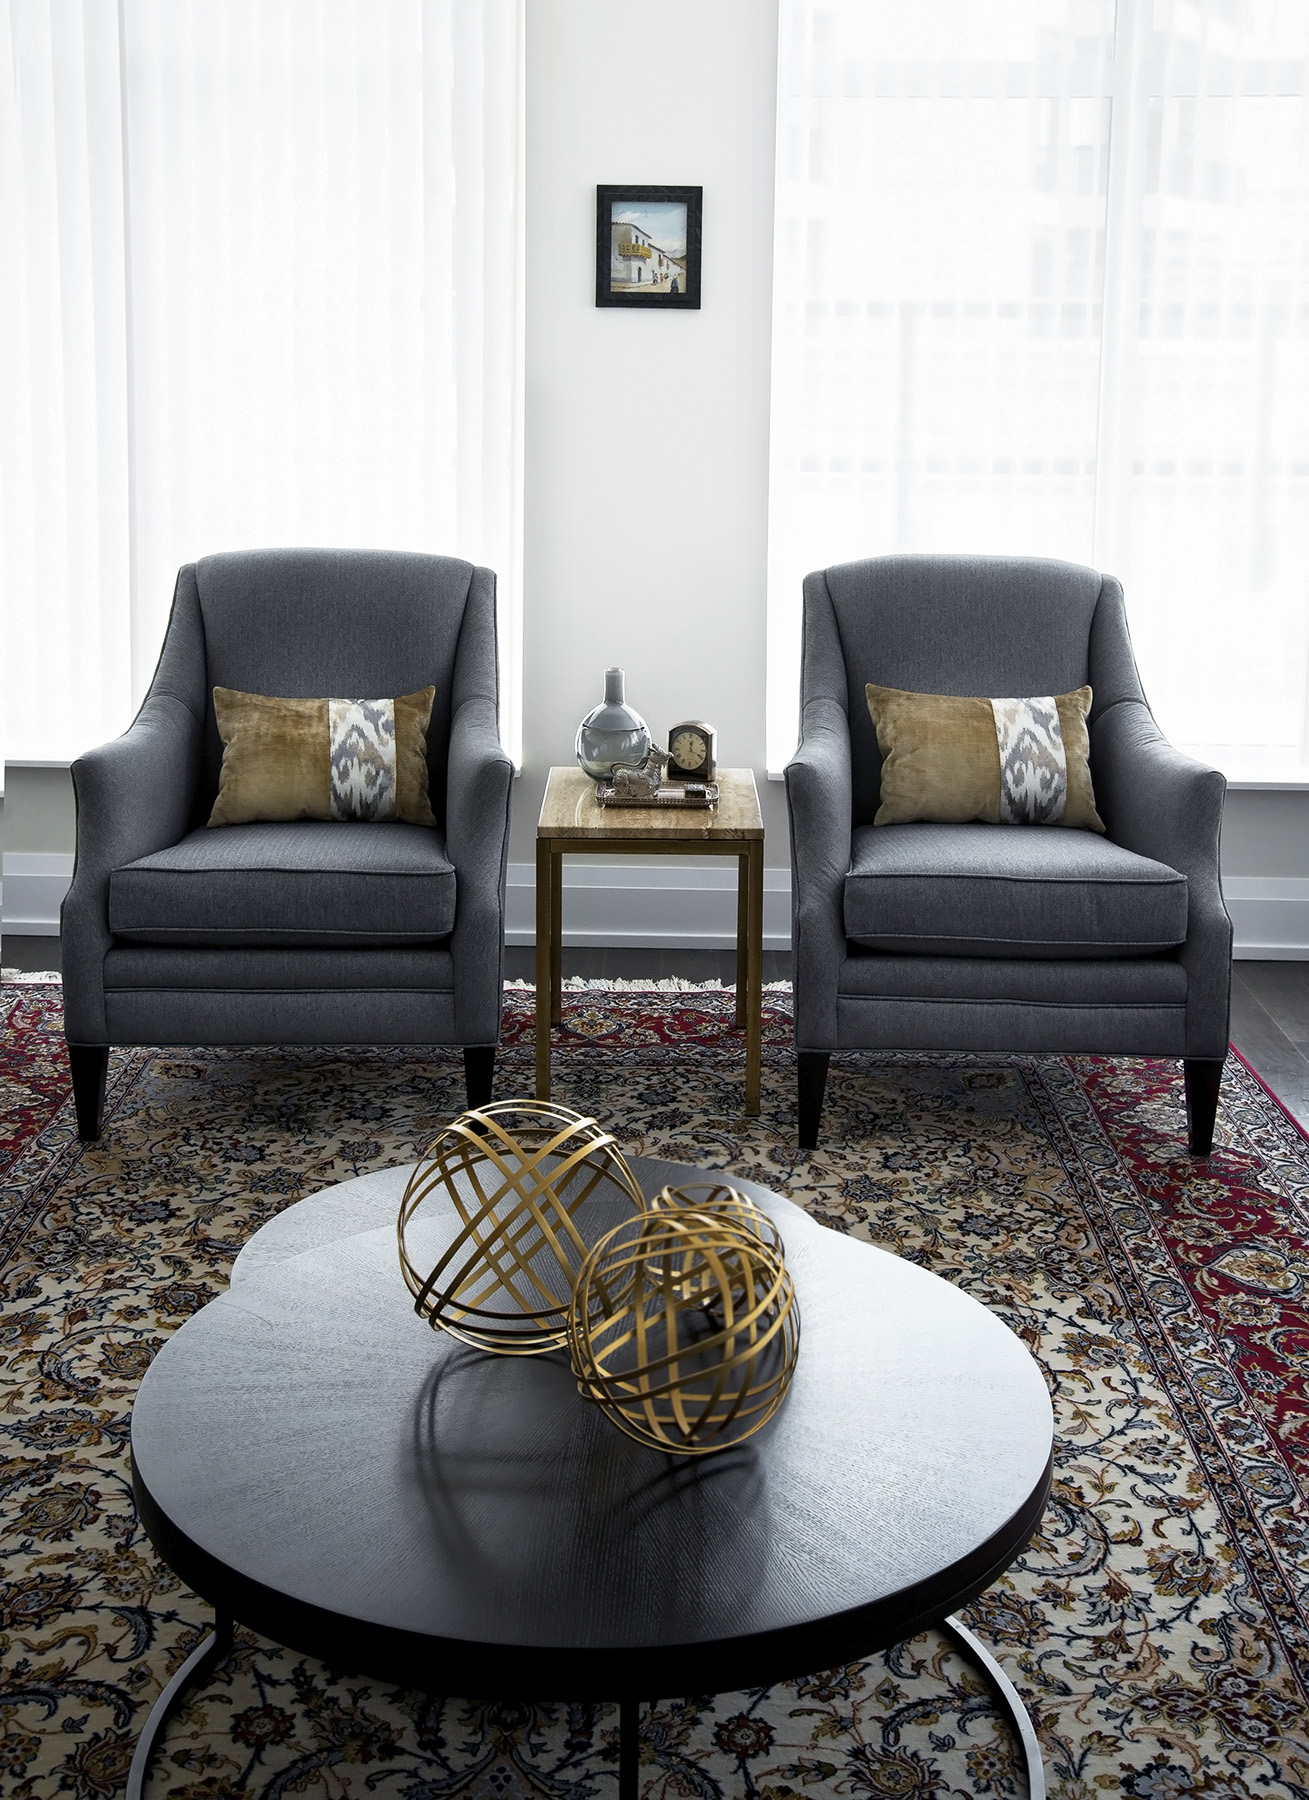 homefront redesigns project Old Mill Condo living room chairs, Kingsway